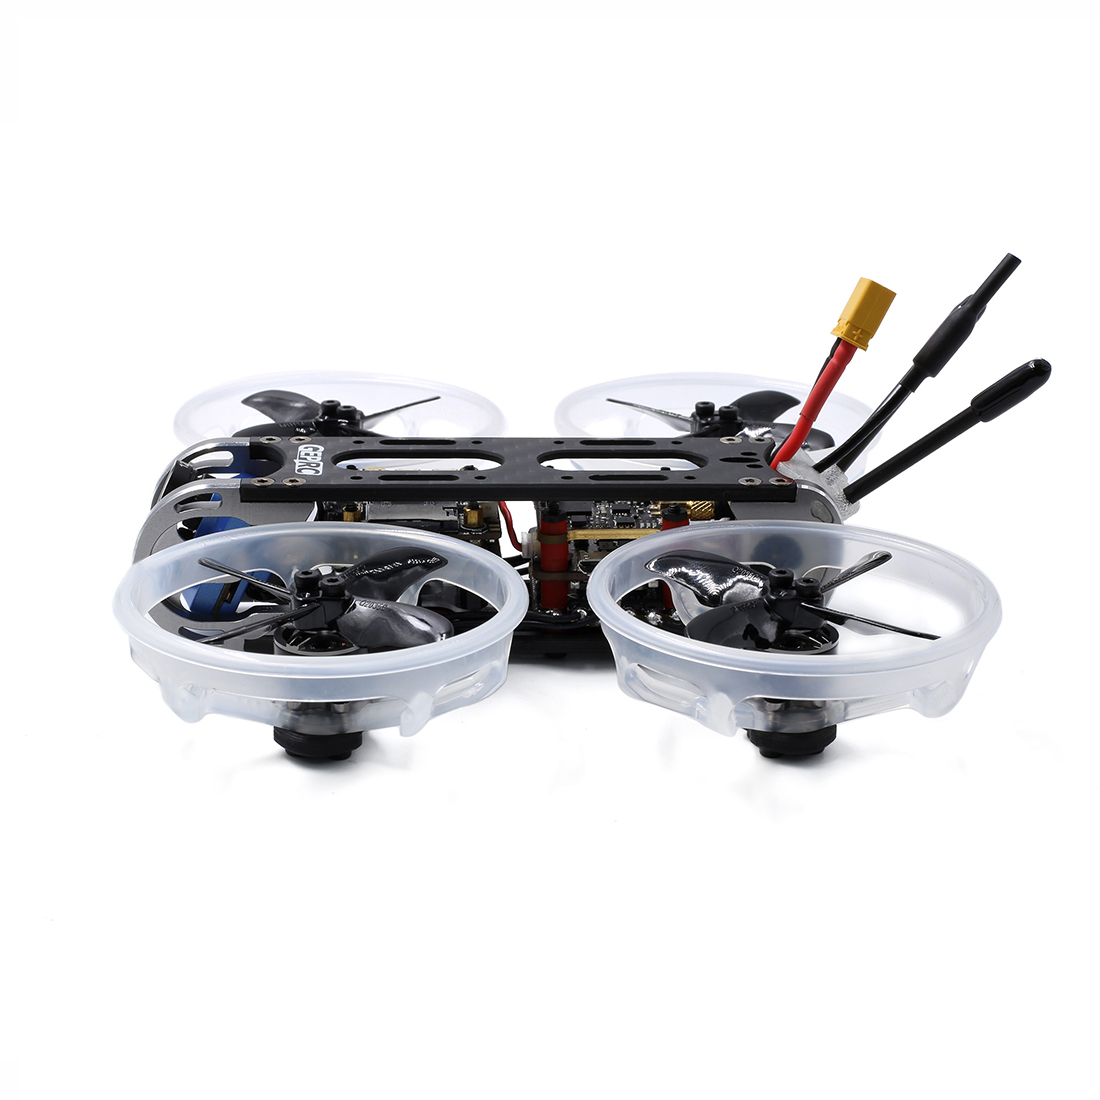 Image 2 - GEPRC CinePro 4K BNF/PNP FPV Racing Drone 4S Compatiable with F722/F405 Flight Controller 115mm 5.8g 48CH 500mW VTX-in Parts & Accessories from Toys & Hobbies